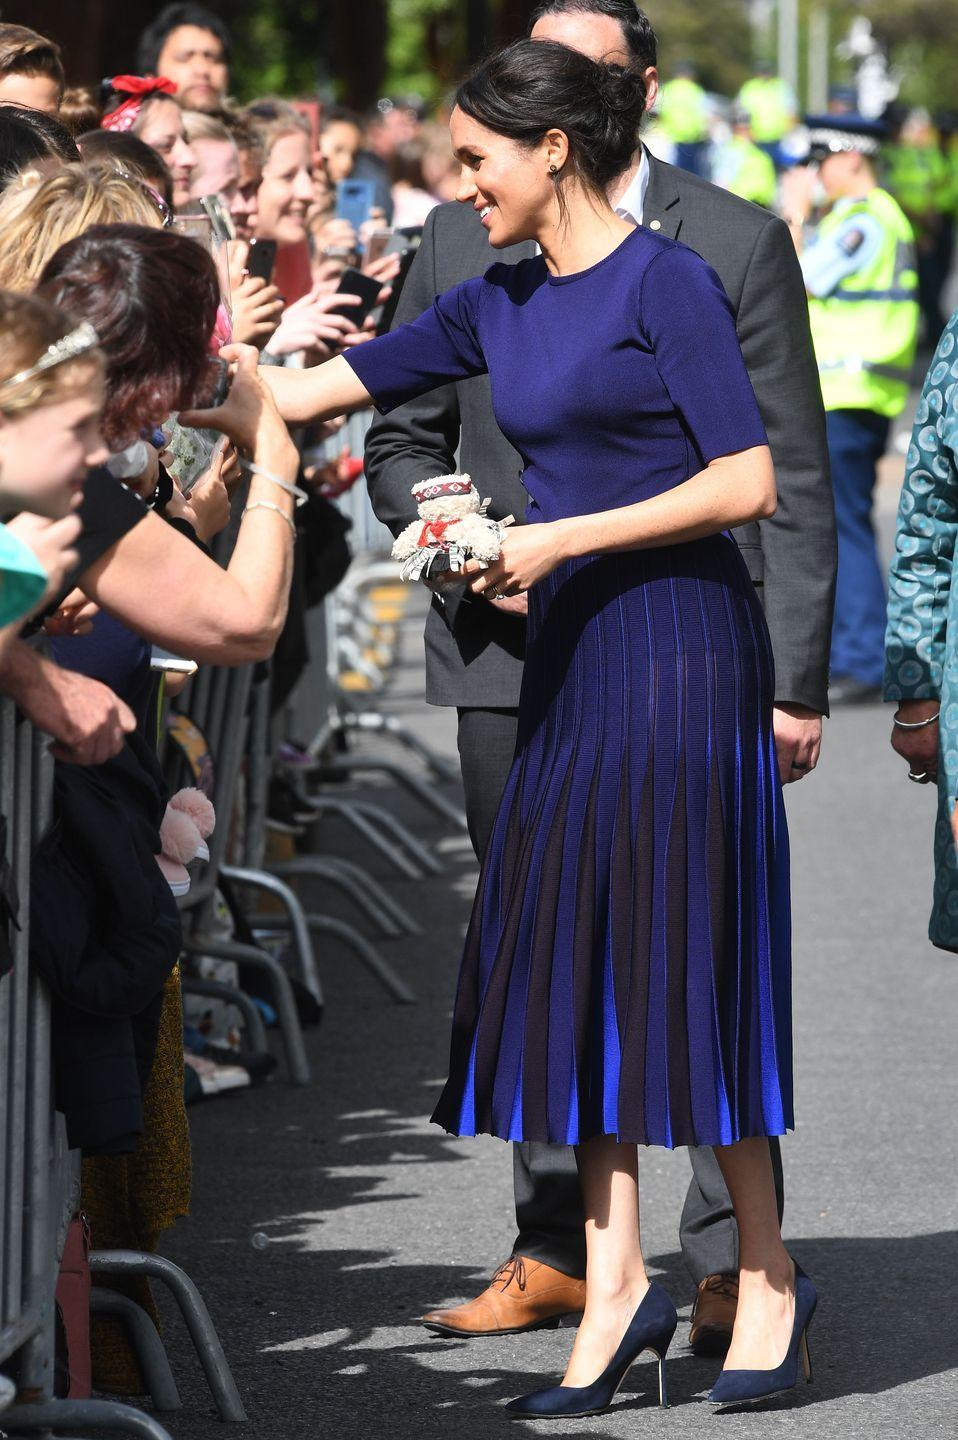 "<p>For one of her final outfits of the royal tour, Meghan stepped out in a custom navy Givenchy look. The Duchess also wore a pair of pumps by Manolo Blahnik.</p><p><a class=""link rapid-noclick-resp"" href=""https://www.barneys.com/product/manolo-blahnik-bb-pumps-503345489.html"" rel=""nofollow noopener"" target=""_blank"" data-ylk=""slk:SHOP NOW"">SHOP NOW</a> <em>Manolo Blahnik Pumps, $625</em></p>"